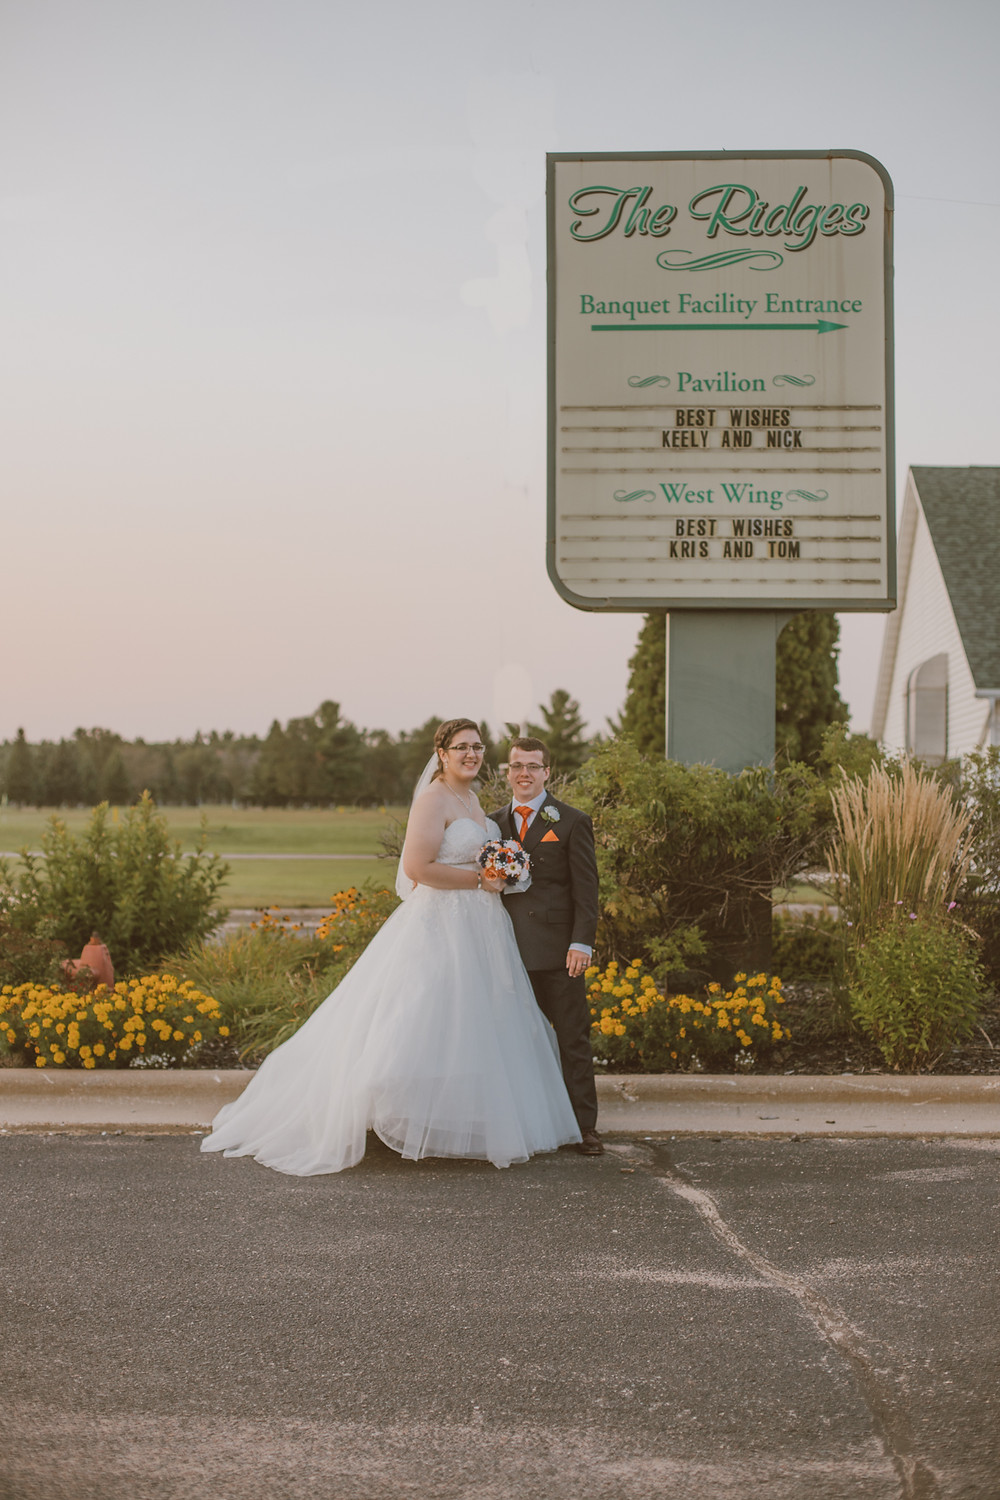 Romantic wedding photography at The Ridges Golf Course in Wisconsin Rapids, WI.